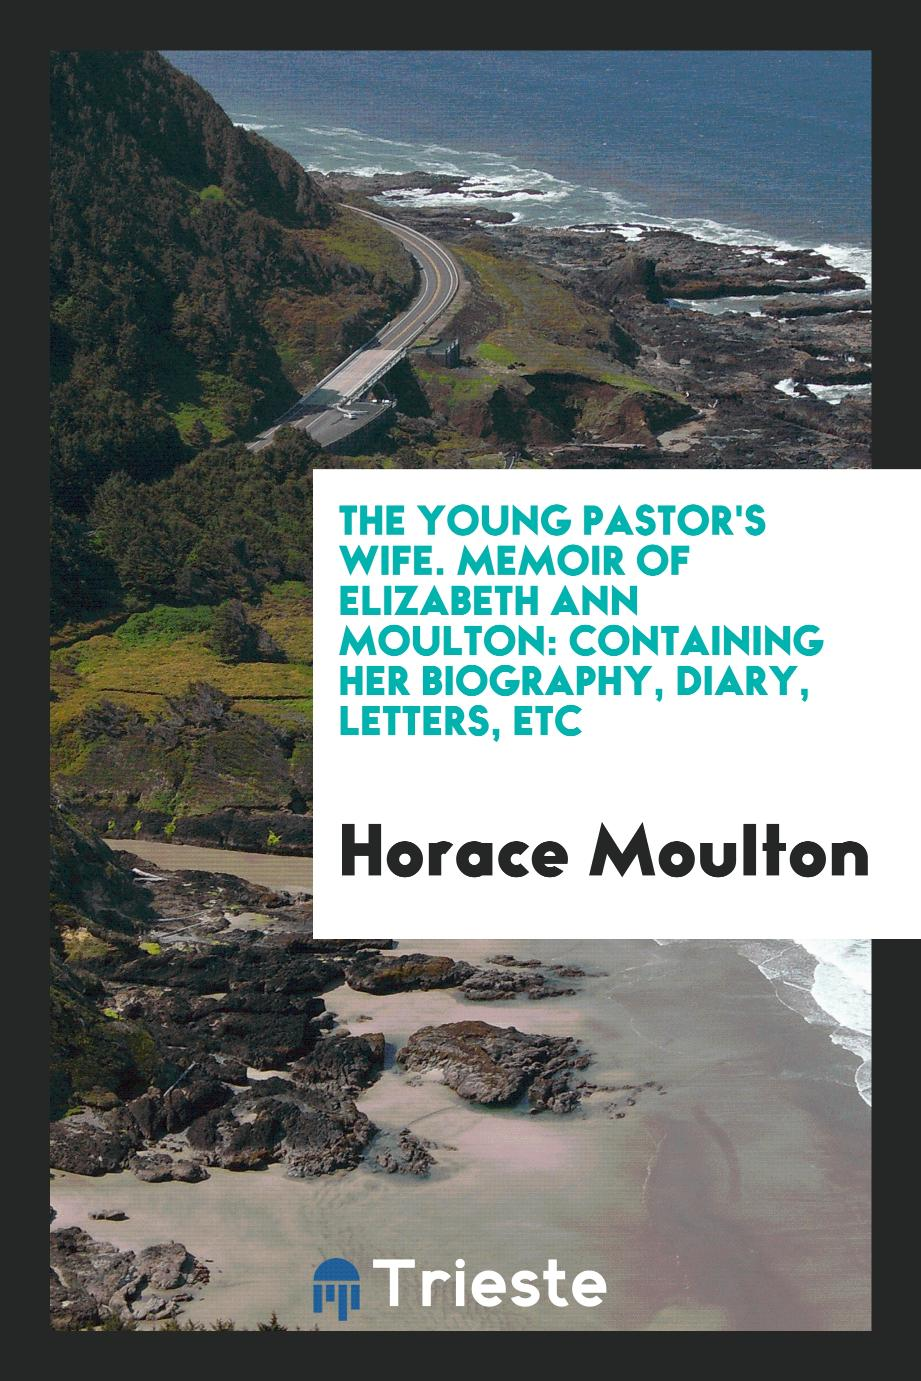 The Young Pastor's Wife. Memoir of Elizabeth Ann Moulton: Containing Her Biography, Diary, Letters, Etc